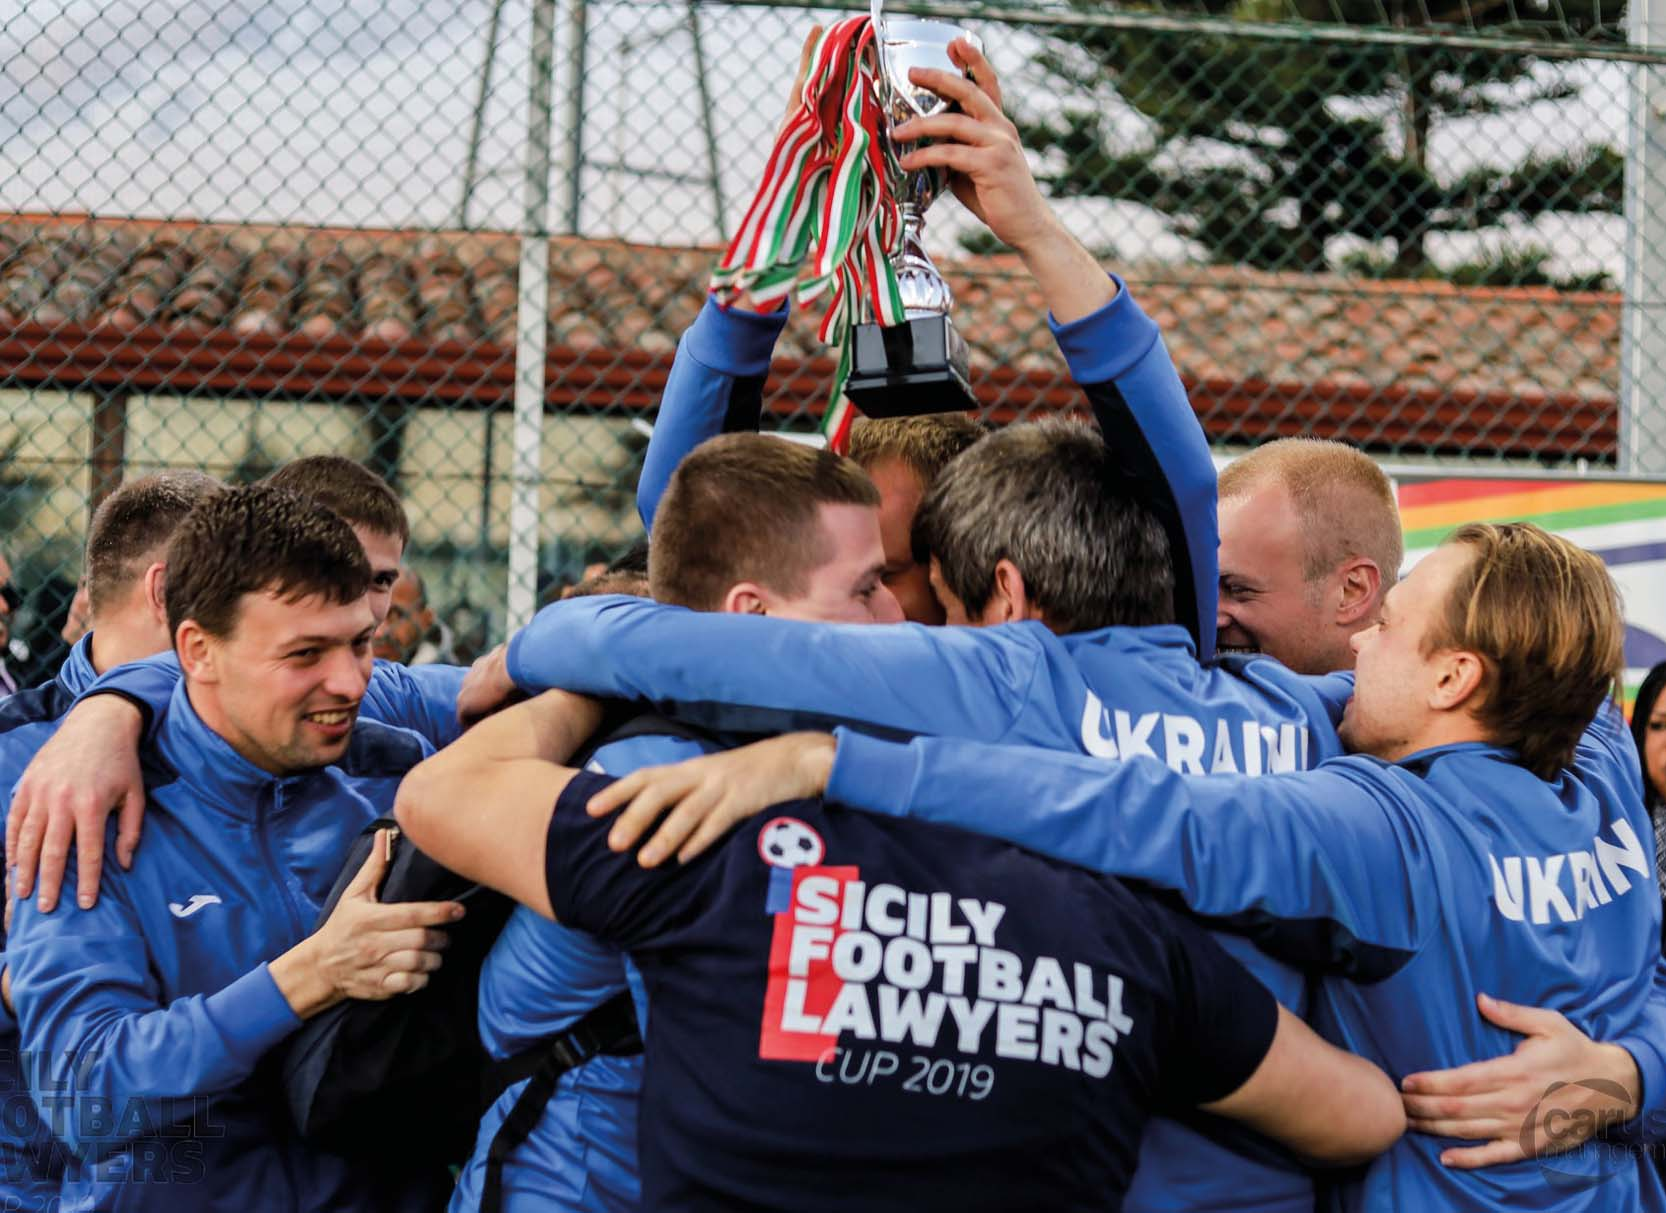 sfl_cup_207